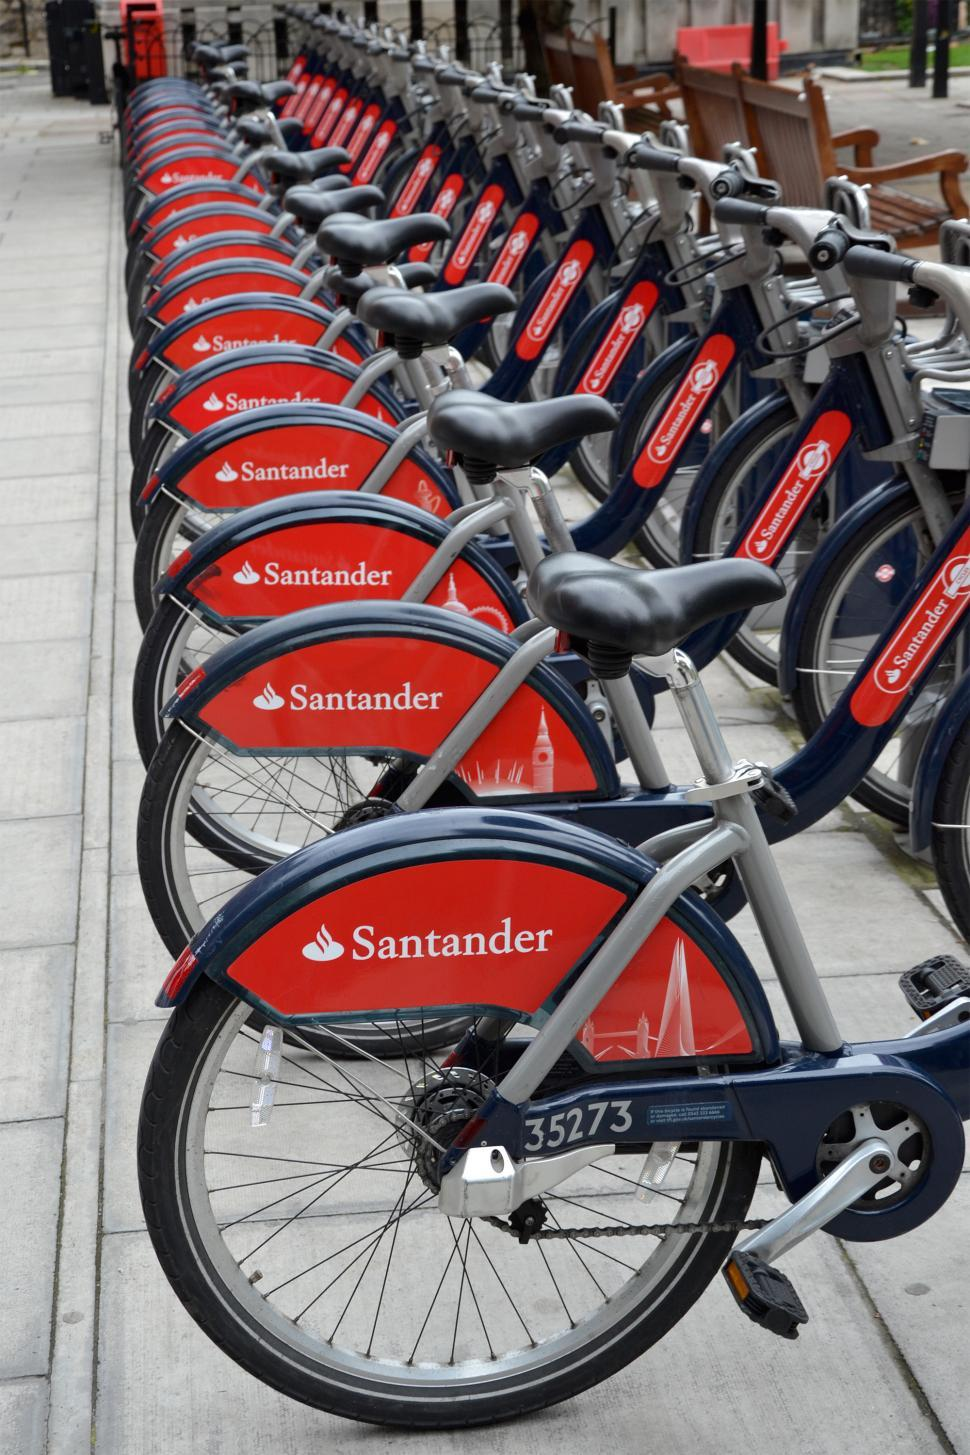 Download Free Stock HD Photo of Santander bikes Online